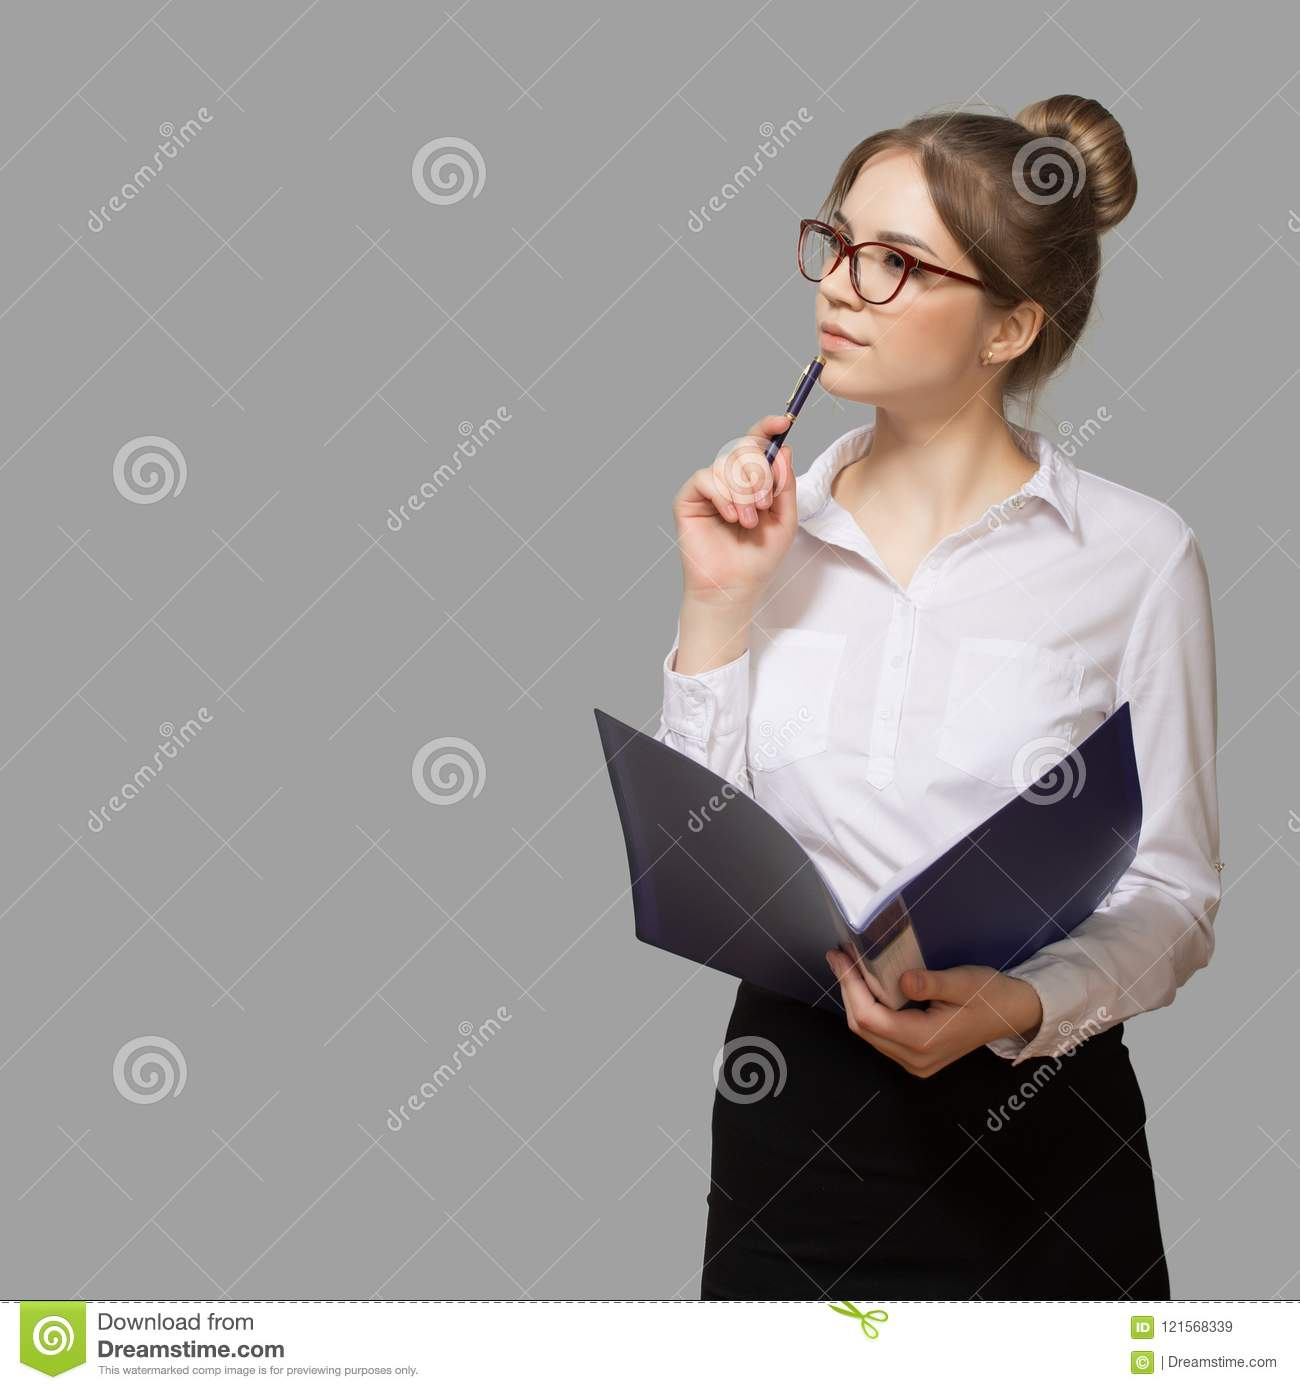 Woman with a folder in glasses